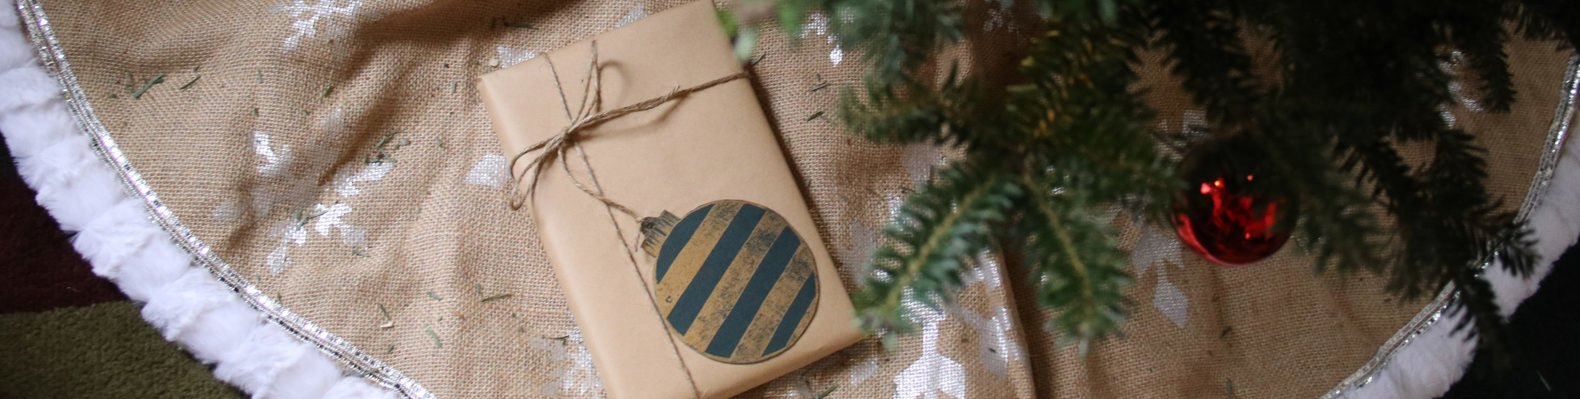 brown paper-wrapped gift under a green tree